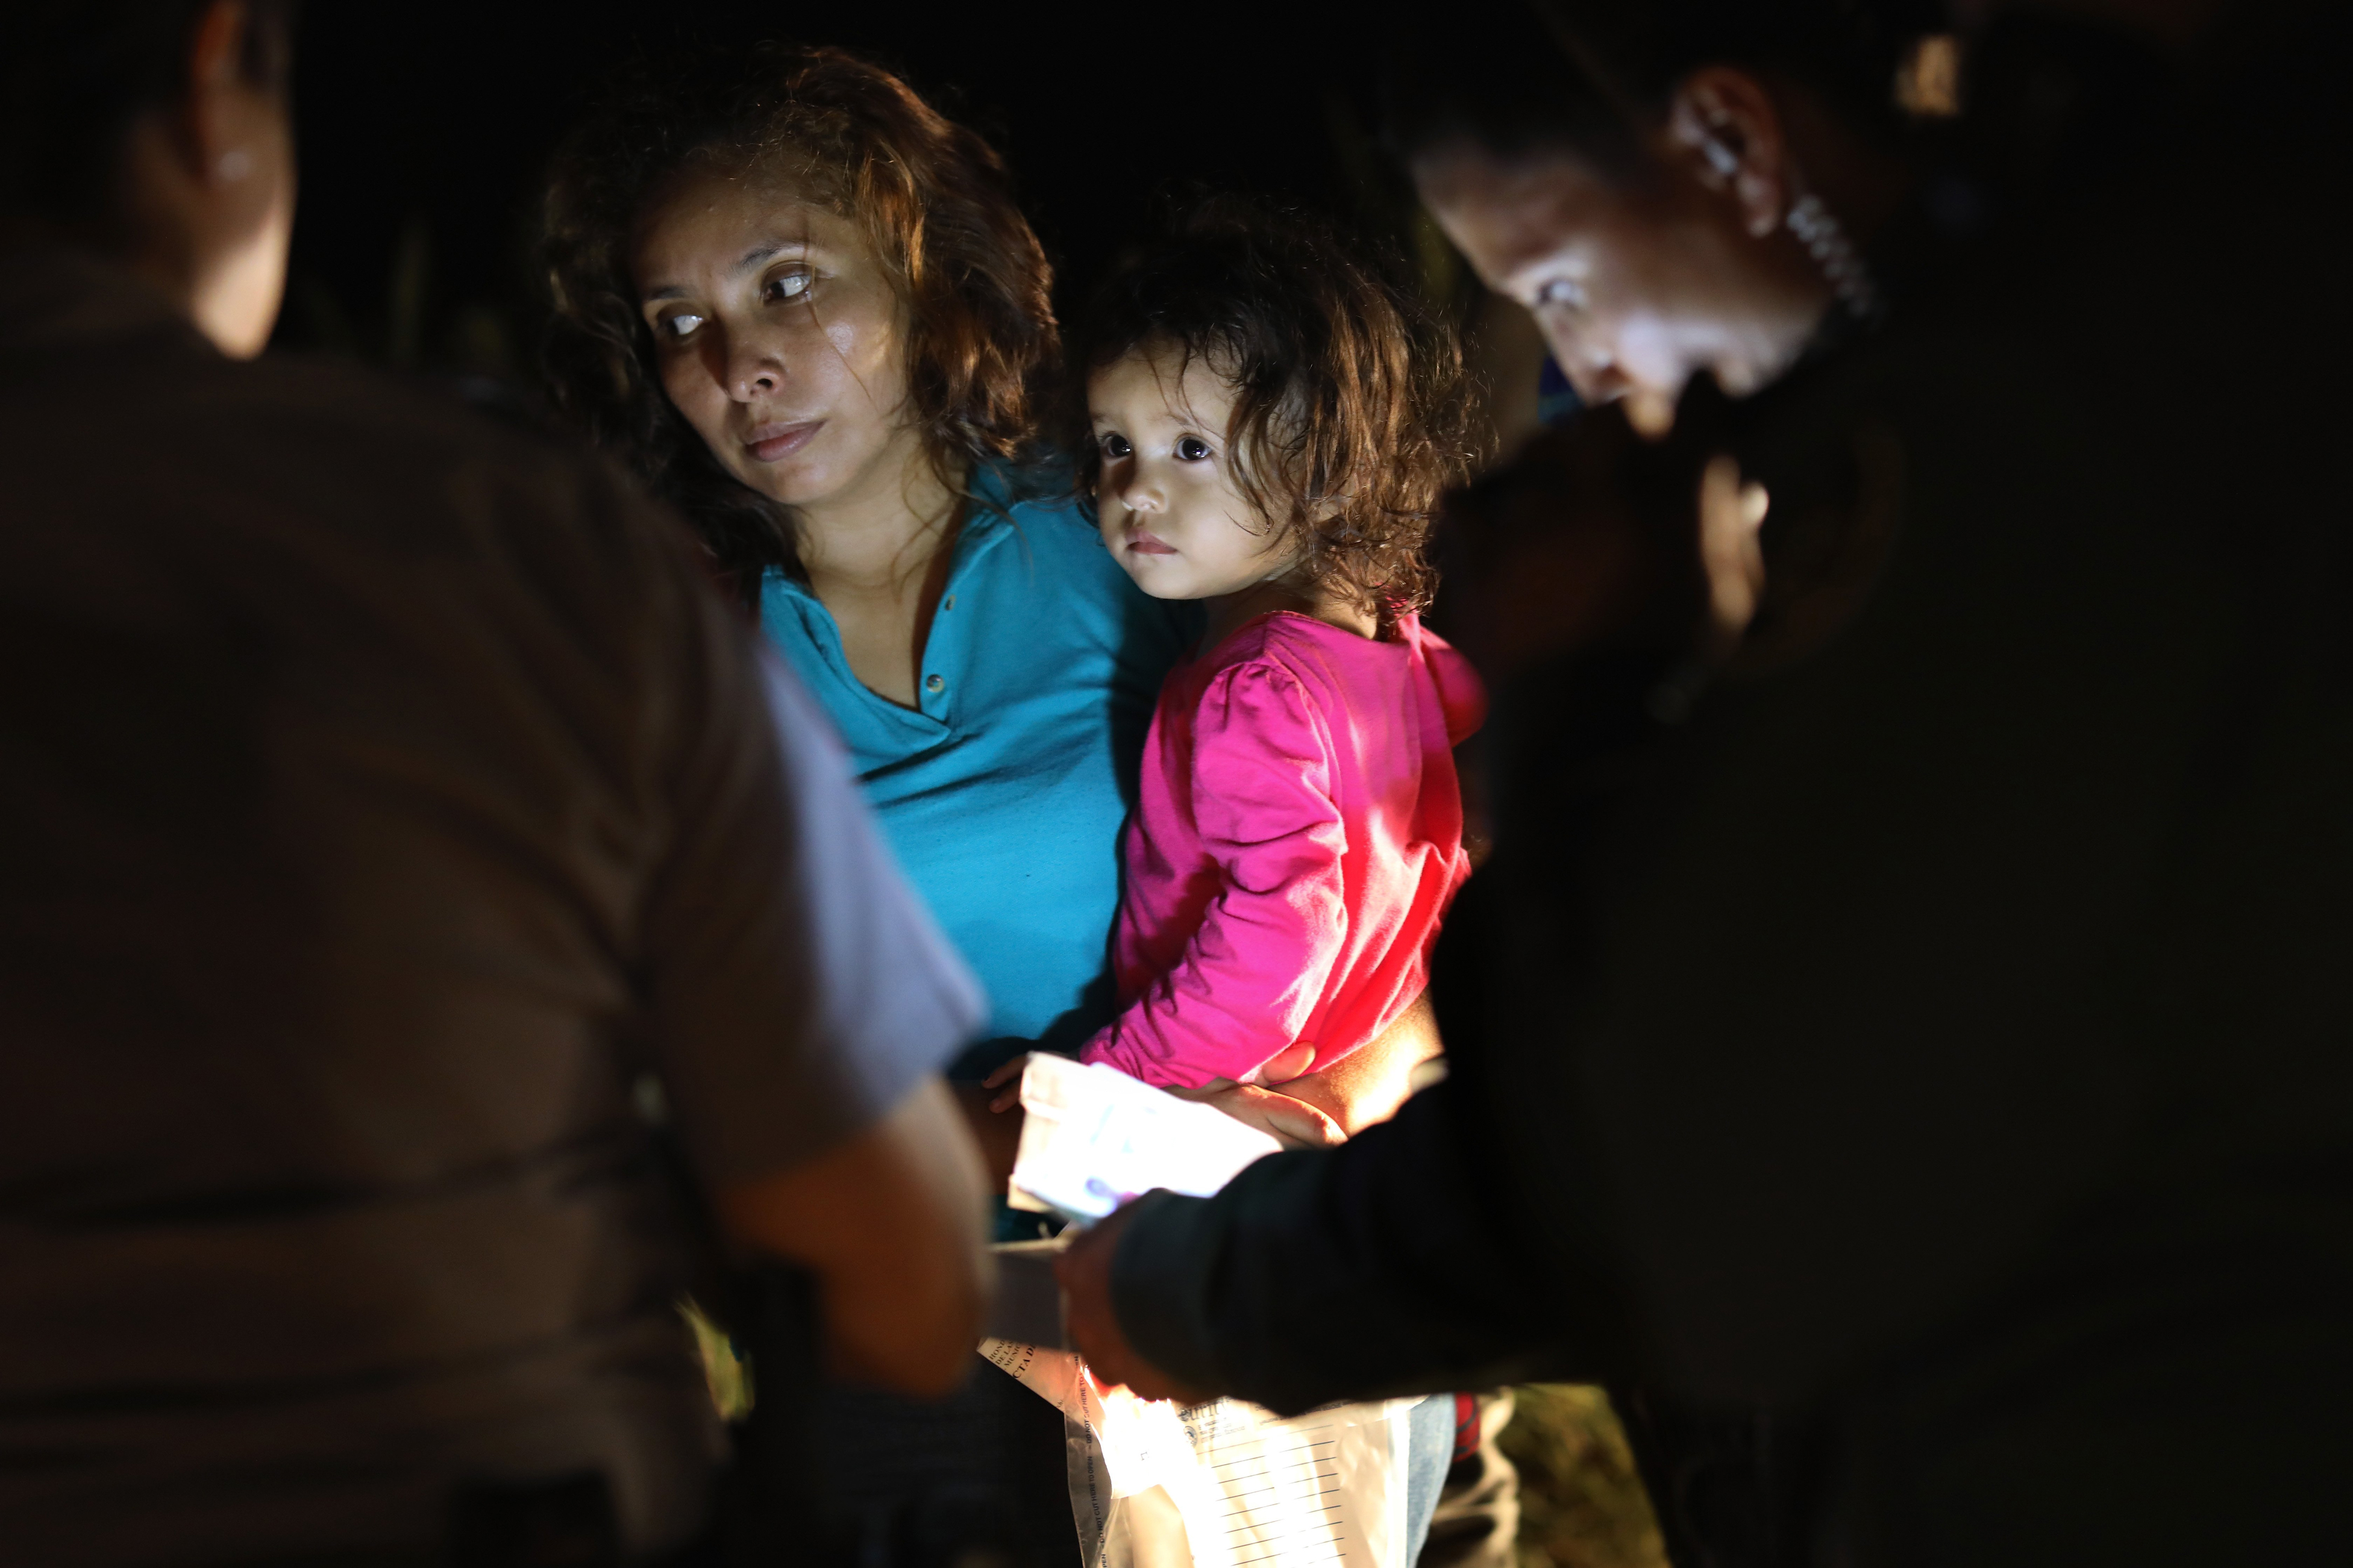 A Honduran mother holds her two-year-old as U.S. Border Patrol as agents review their papers near the U.S.-Mexico border in McAllen, Texas on June 12, 2018. The asylum seekers had rafted across the Rio Grande from Mexico and were detained by U.S. Border Patrol agents before being sent to a processing center for possible separation.